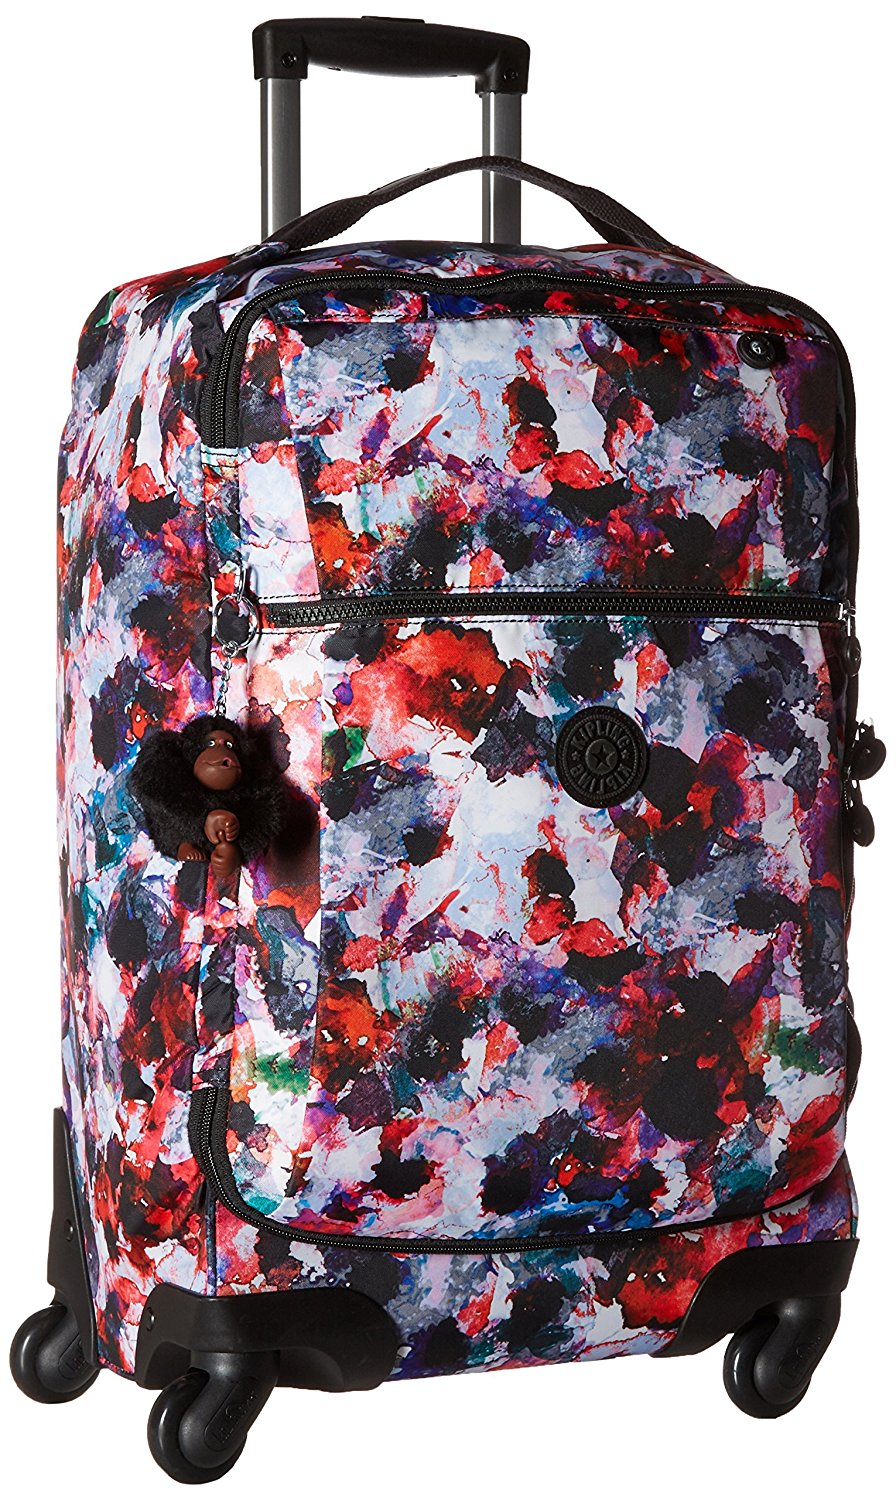 7e01577001 Get Quotations · Kipling Darcey Small Printed Wheeled Luggage Carry On Bag